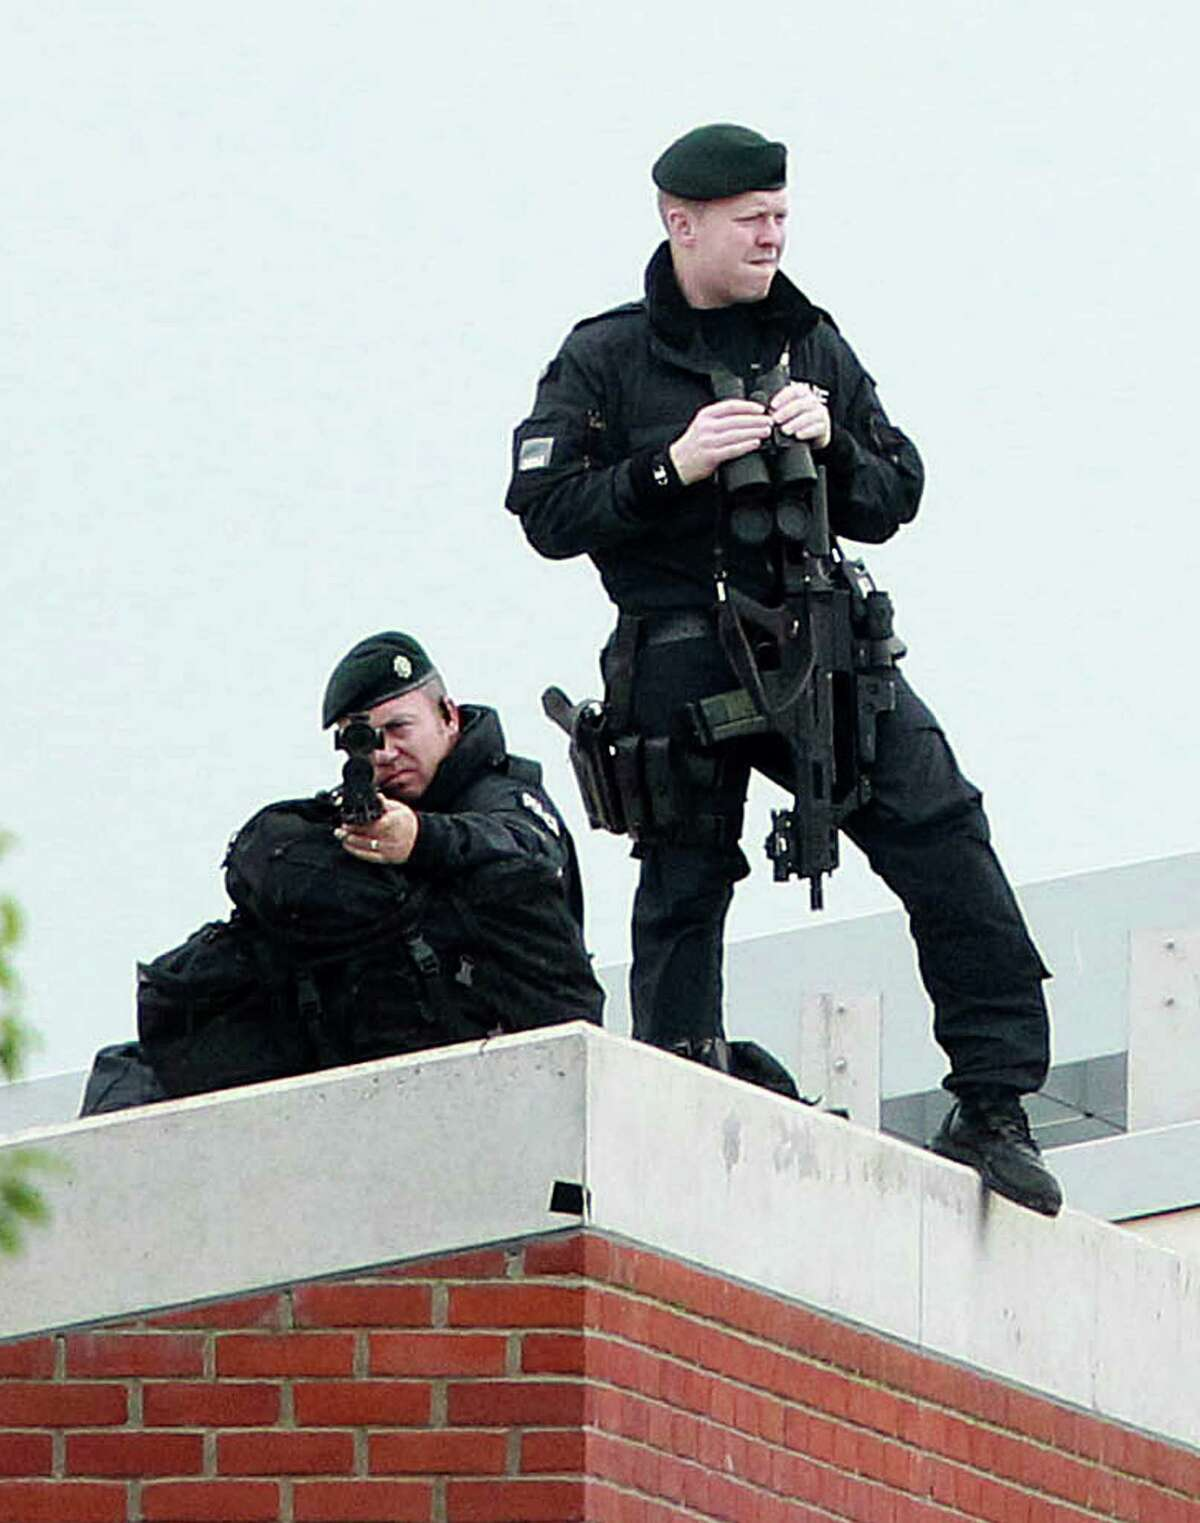 Armed police keep watch from the roof of the Lyric Theatre in Belfast, Northern Ireland, on June 27, 2012, as Britain's Queen Elizabeth II shook hands with Northern Ireland Deputy First Minister Martin McGuinness. Queen Elizabeth II shook hands with former IRA commander Martin McGuinness on Wednesday in a landmark moment in the Northern Ireland peace process, Buckingham Palace said. The initial handshake between the queen and McGuinness, who is now deputy first minister of the British province, took place away from the media spotlight behind closed doors in Belfast's Lyric theatre. AFP PHOTO / PETER MUHLYPETER MUHLY/AFP/GettyImages